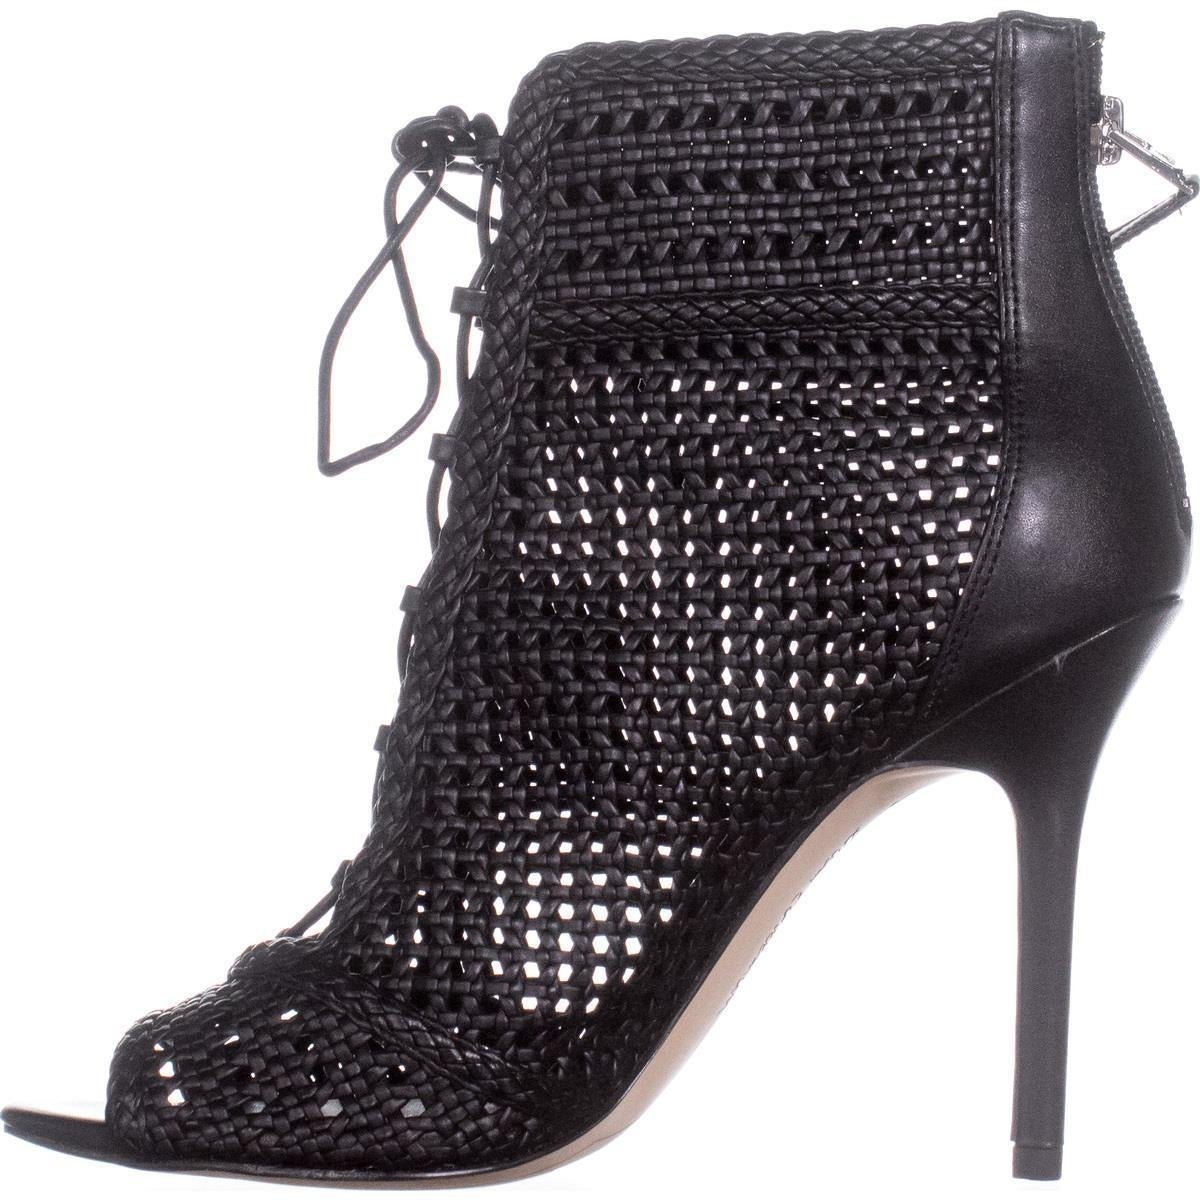 9b44236a5 Shop Sam Edelman Abbie Perforated Ankle Booties